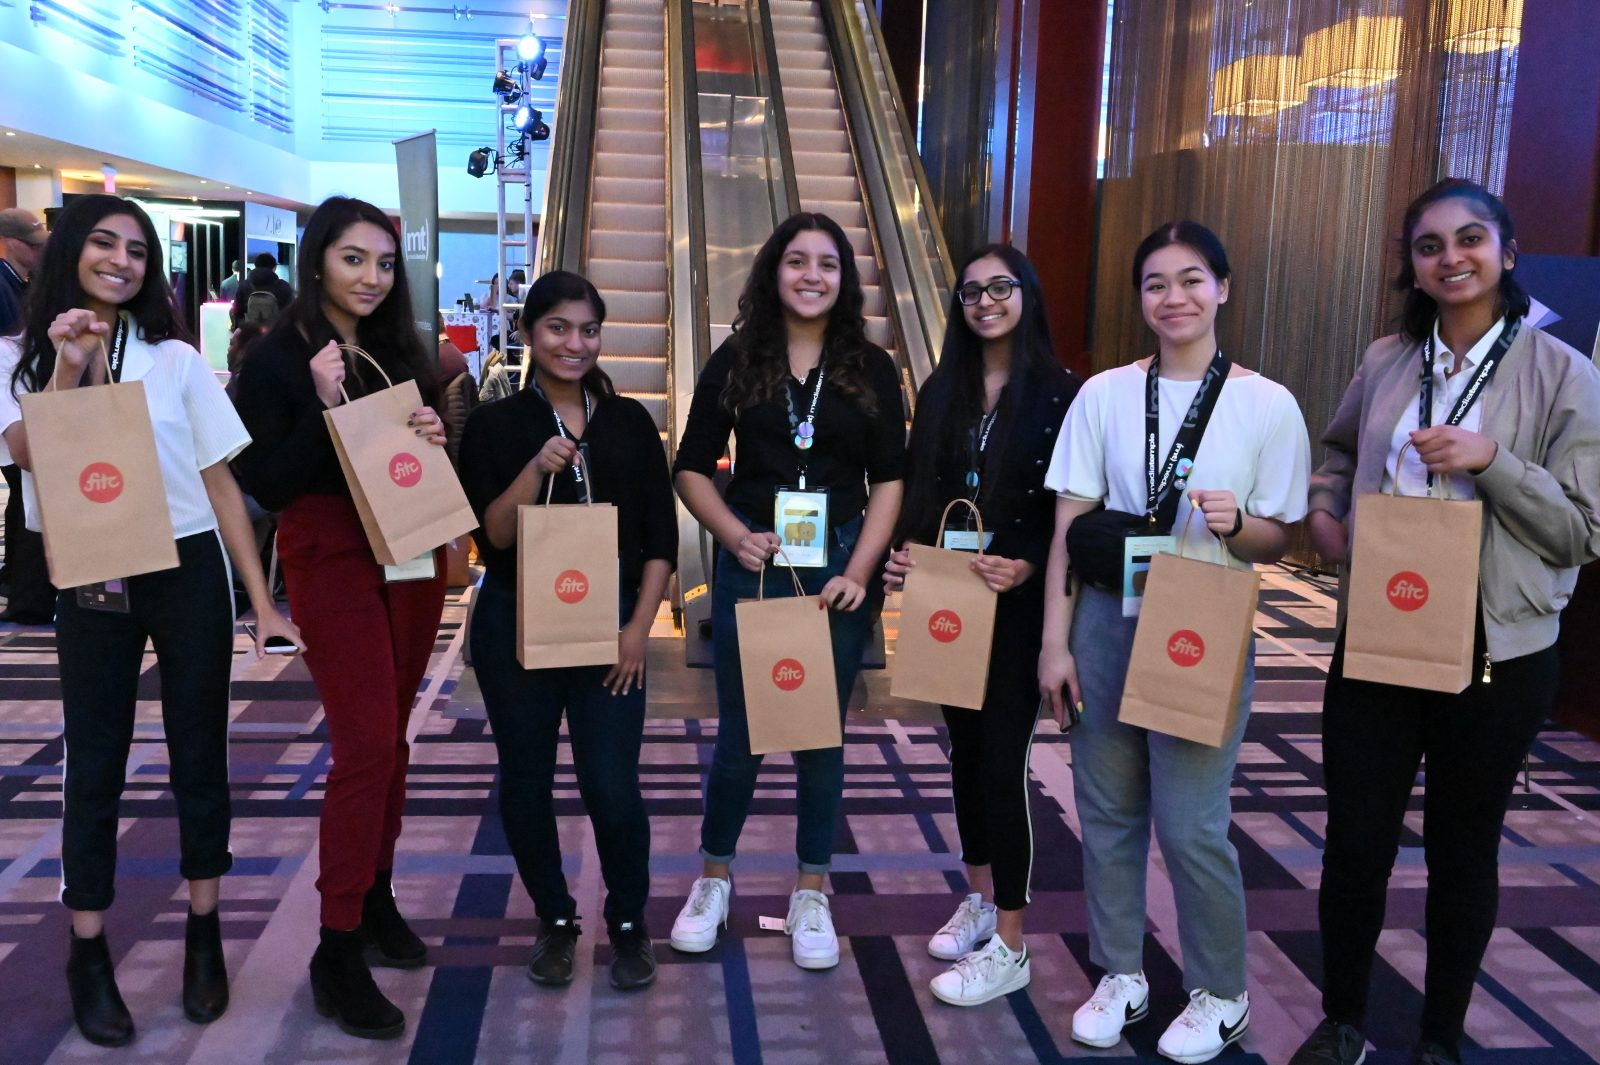 The girls at FITC 2019 showing their swag bags